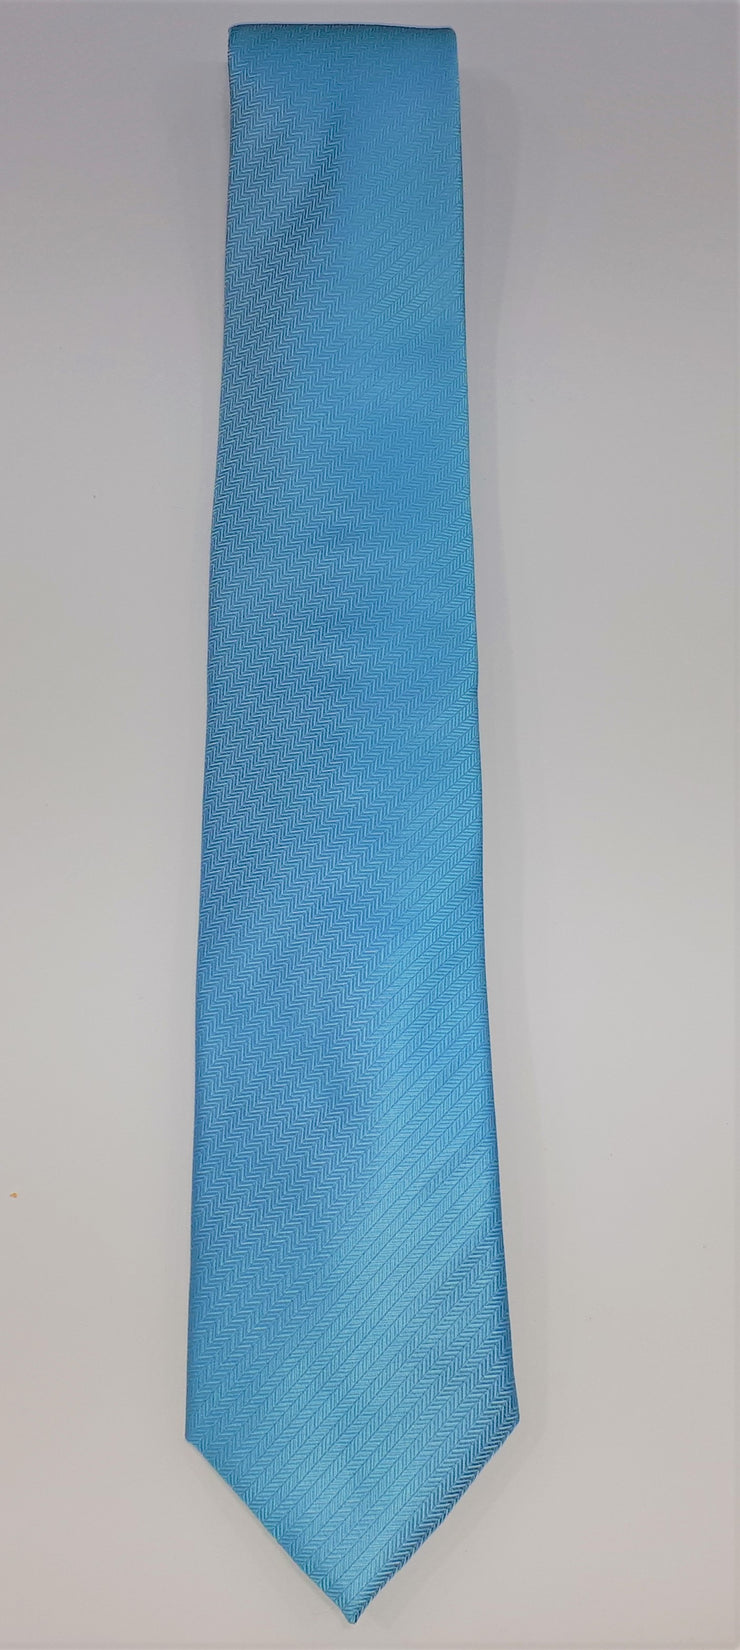 FORMALATIES HERRINGBONE TIE 'BLUE ICE'